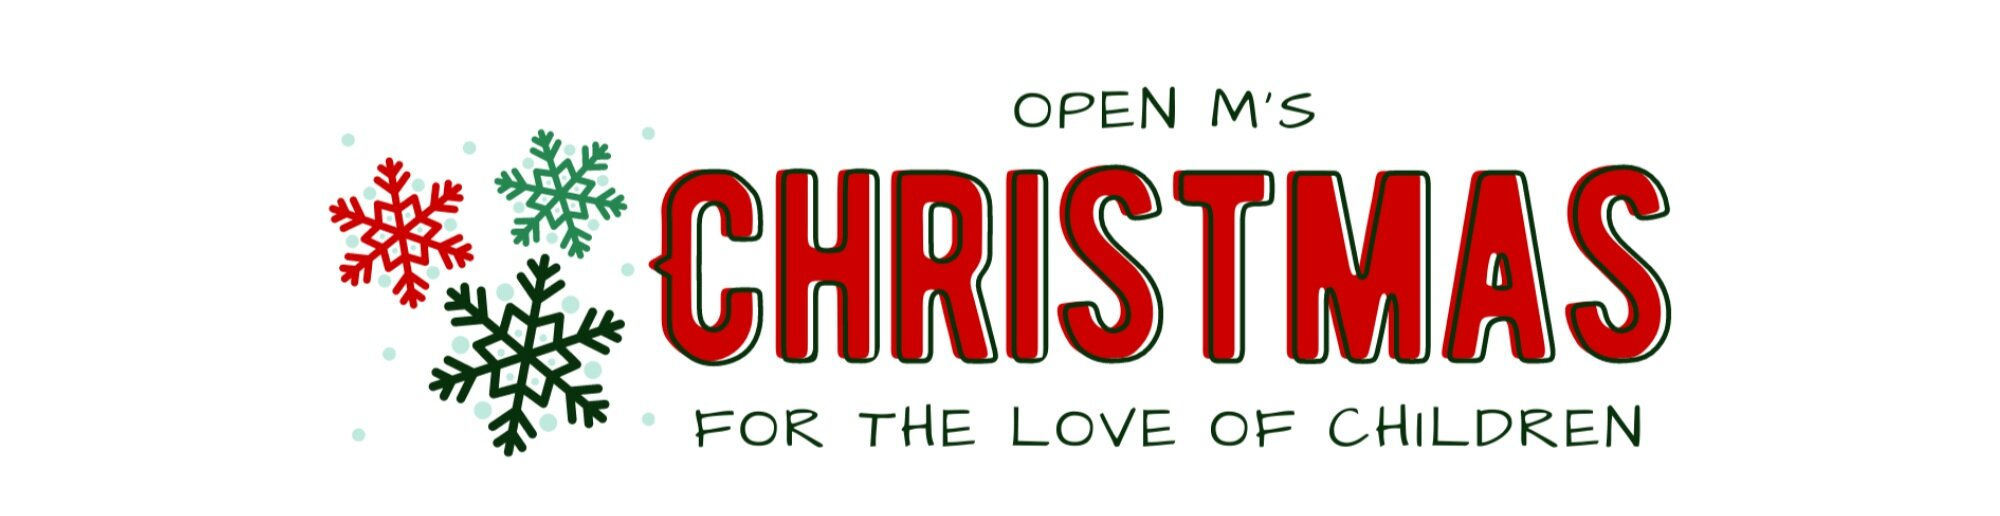 Christmas Sign Up For Low Income Families 2021 Cleveland Ohio Christmas For The Love Of Children Open M